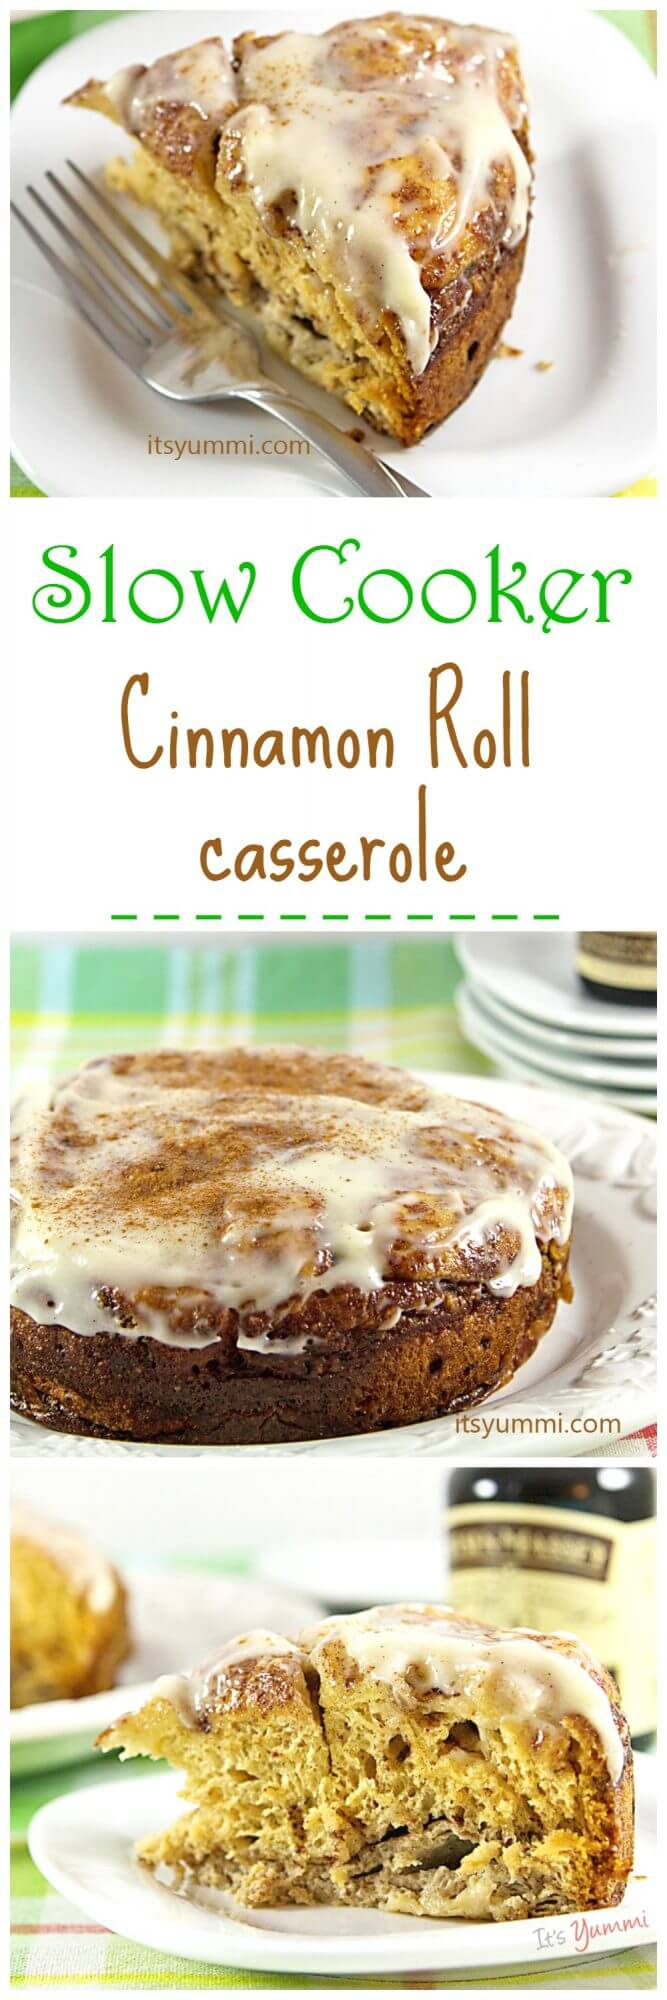 Easy Slow Cooker Cinnamon Roll Casserole recipe, from @itsyummi